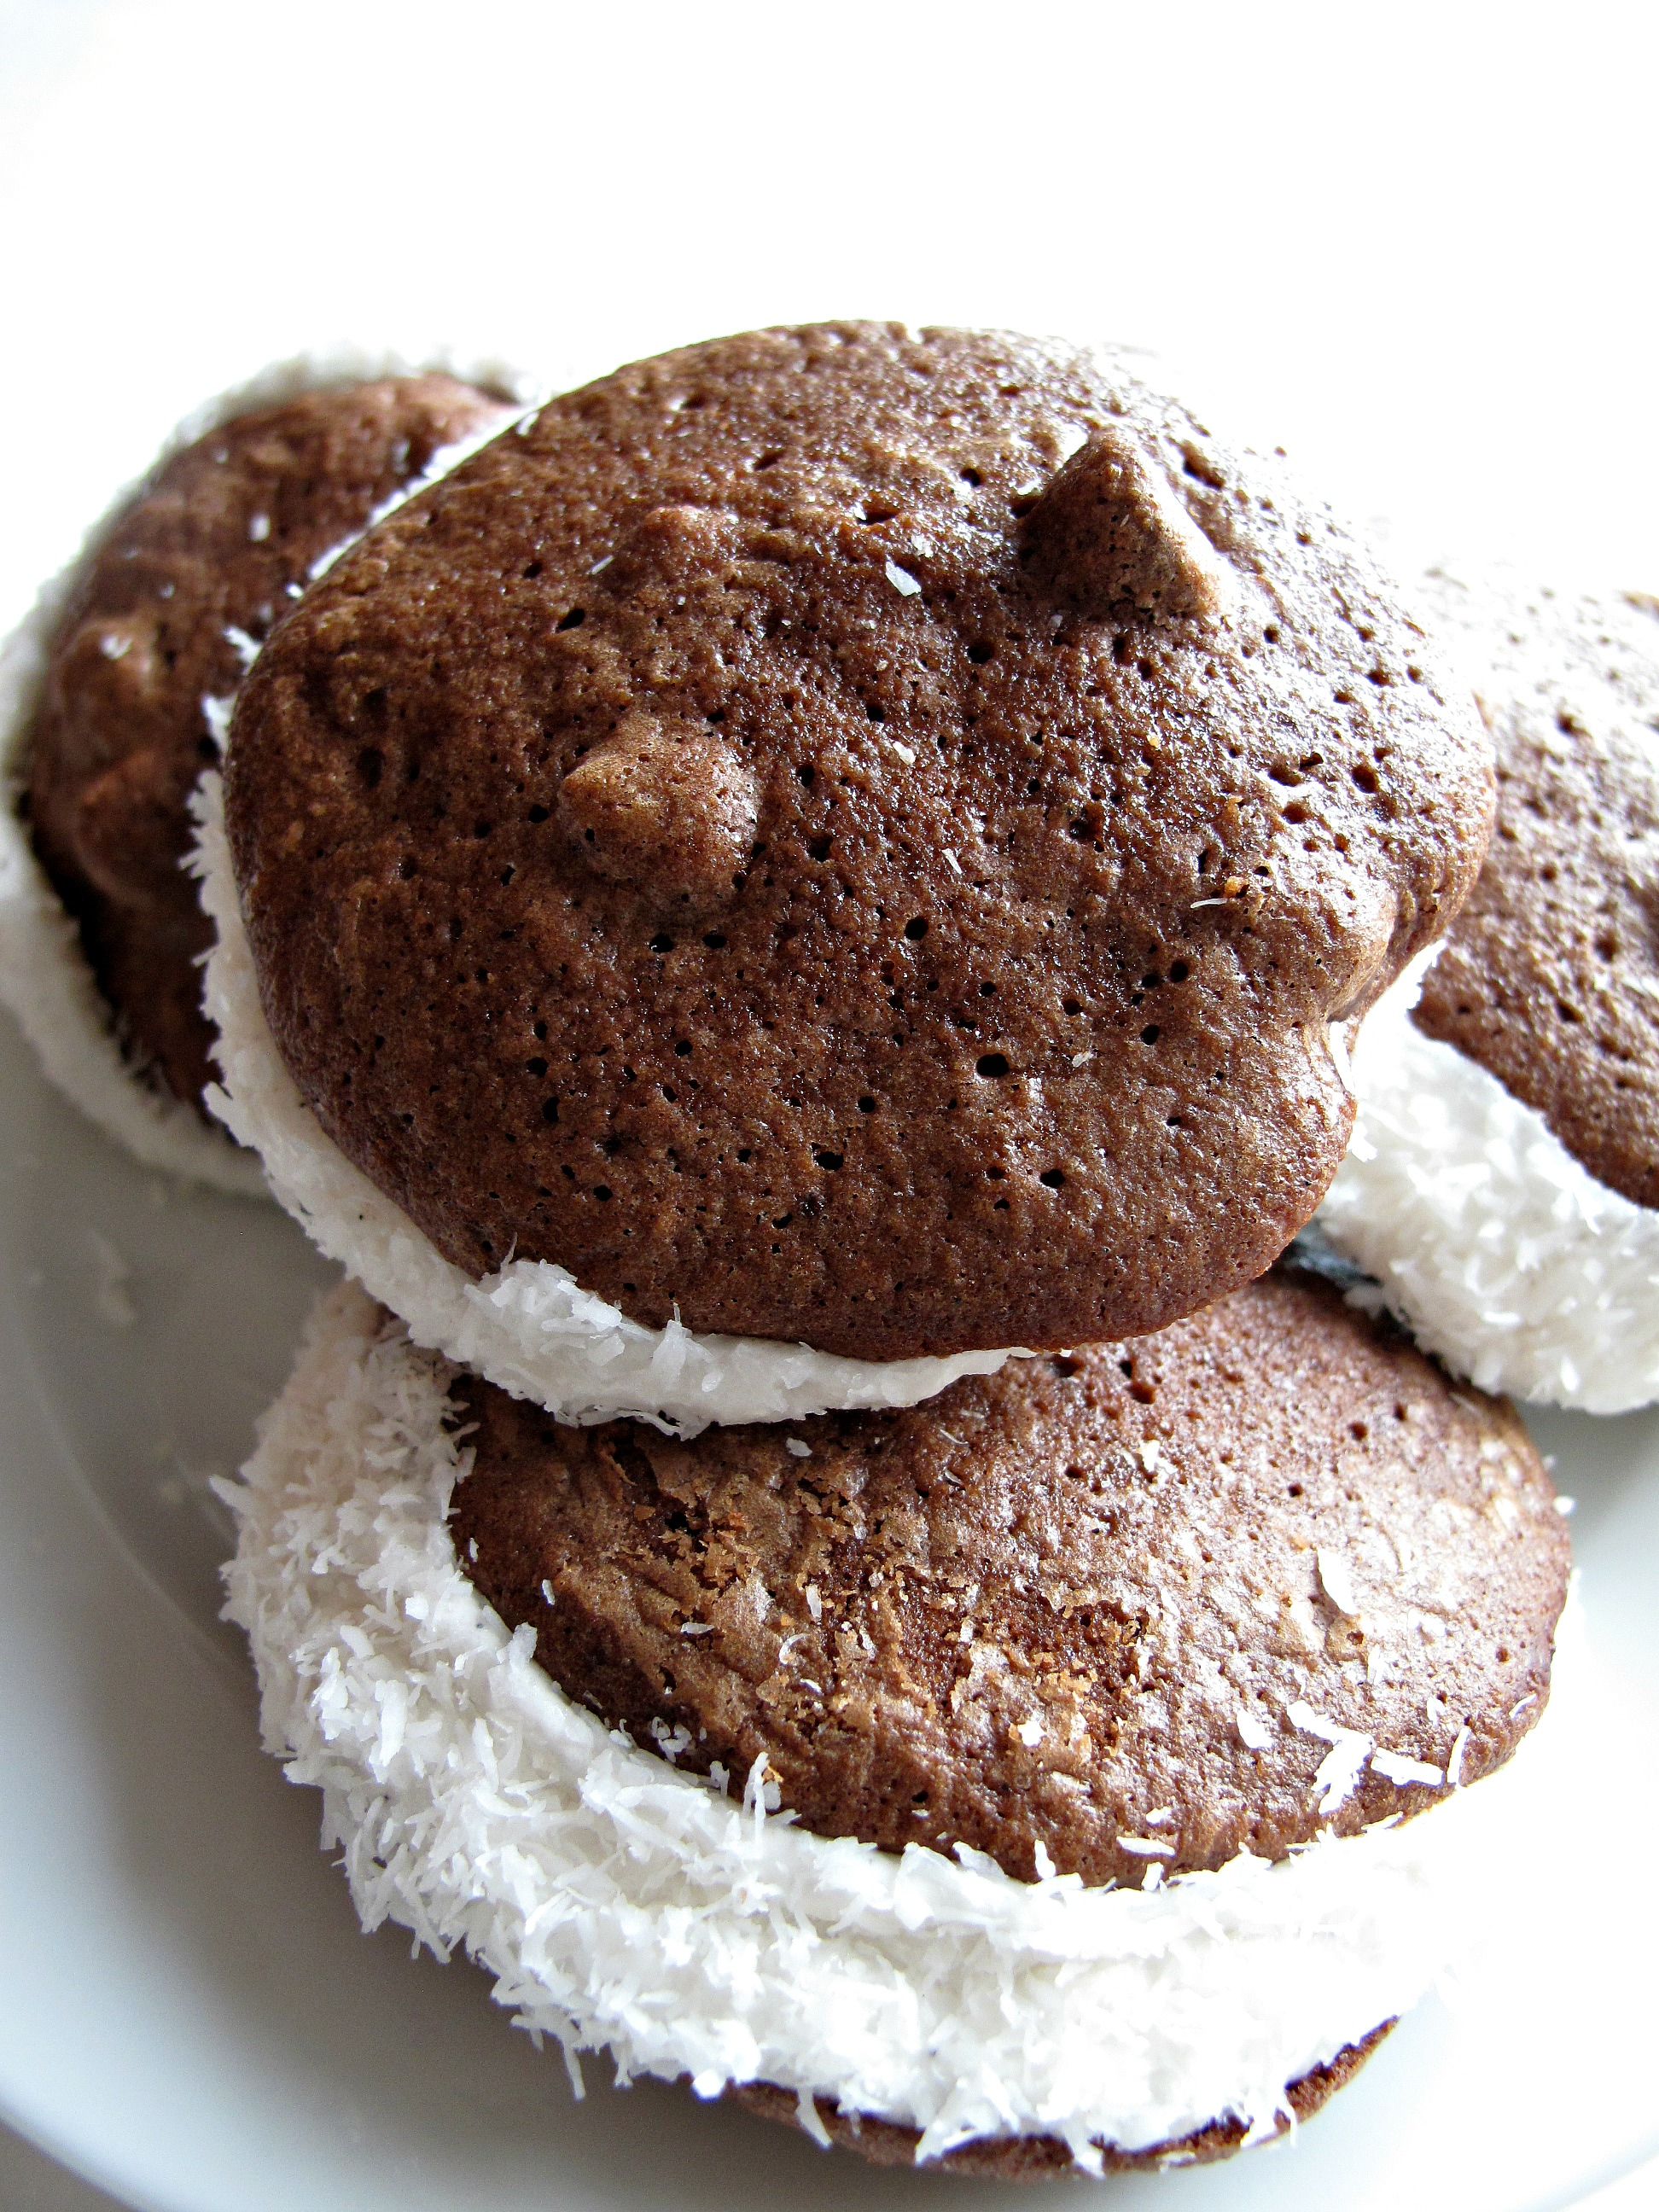 Whoopie Pies with marshmallow filling and edges rolled in coconut.